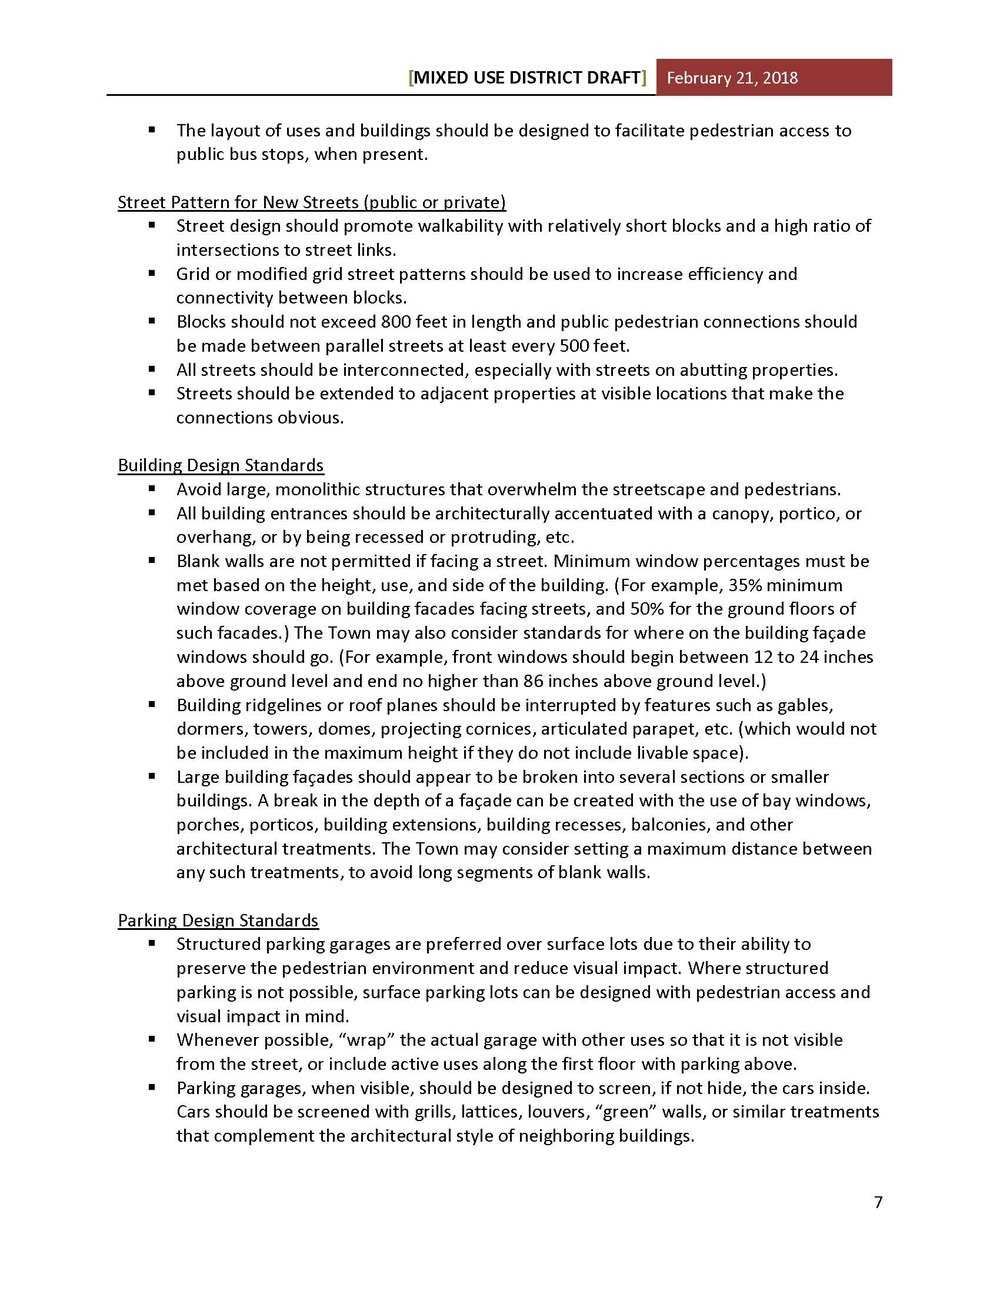 Mixed-Use Descriptions and Dimensions - Draft - 2-21-18_Page_7.jpg